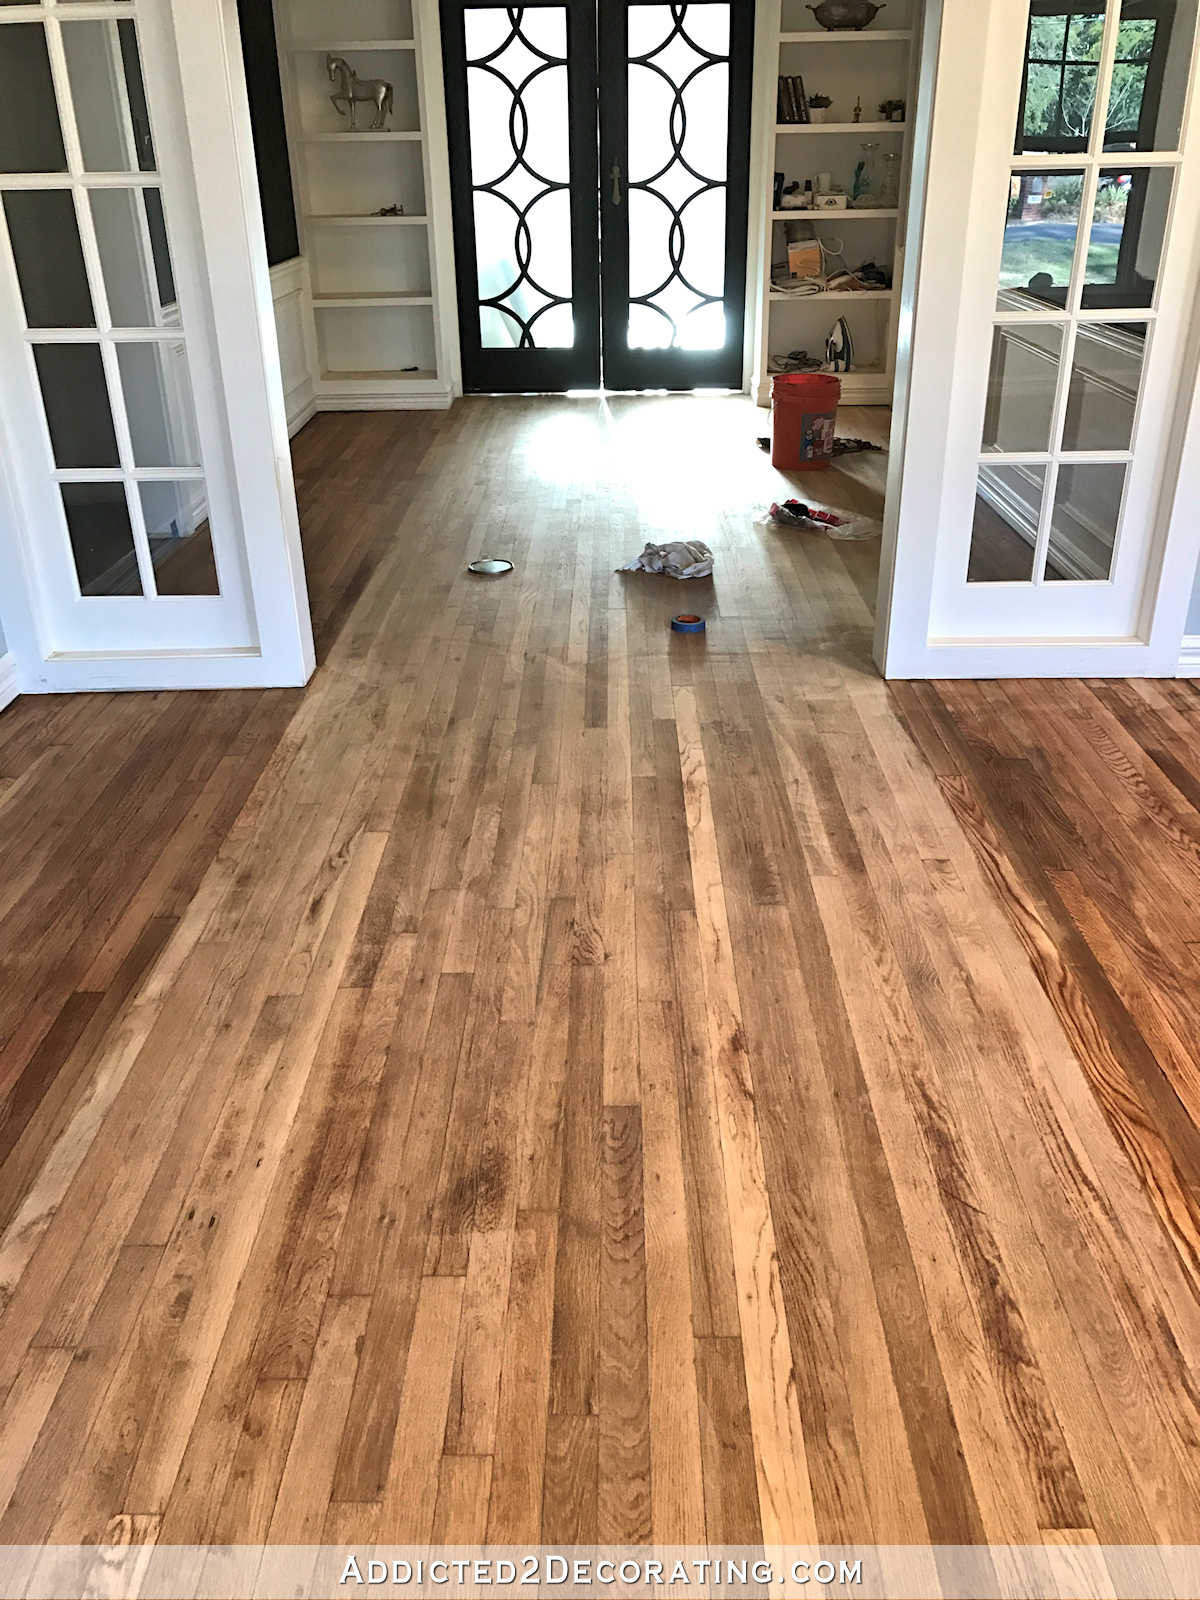 Staining Hardwood Floors Of How to Apply Polyurethane to Floors Adventures In Staining My Red Pertaining to How to Apply Polyurethane to Floors Adventures In Staining My Red Oak Hardwood Floors Products